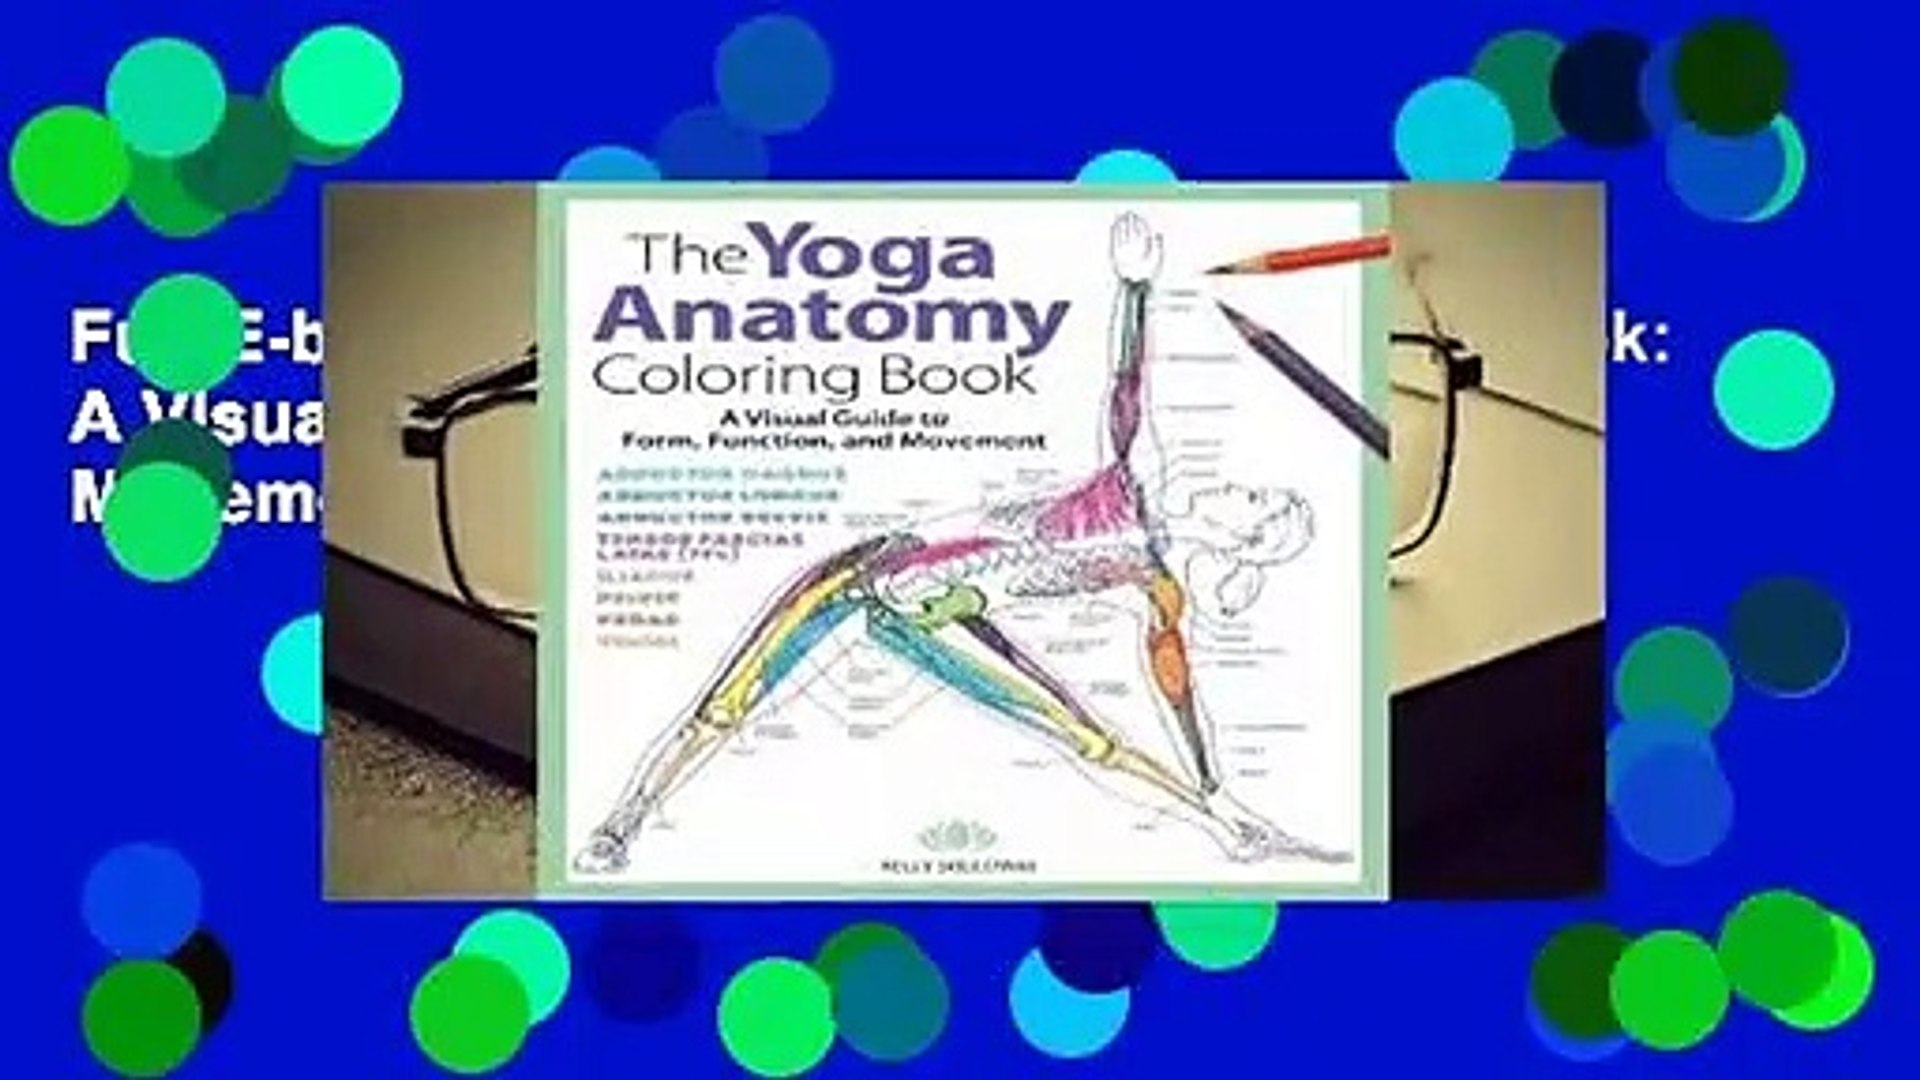 Full E Book The Yoga Anatomy Coloring Book A Visual Guide To Form Function And Movement For Video Dailymotion